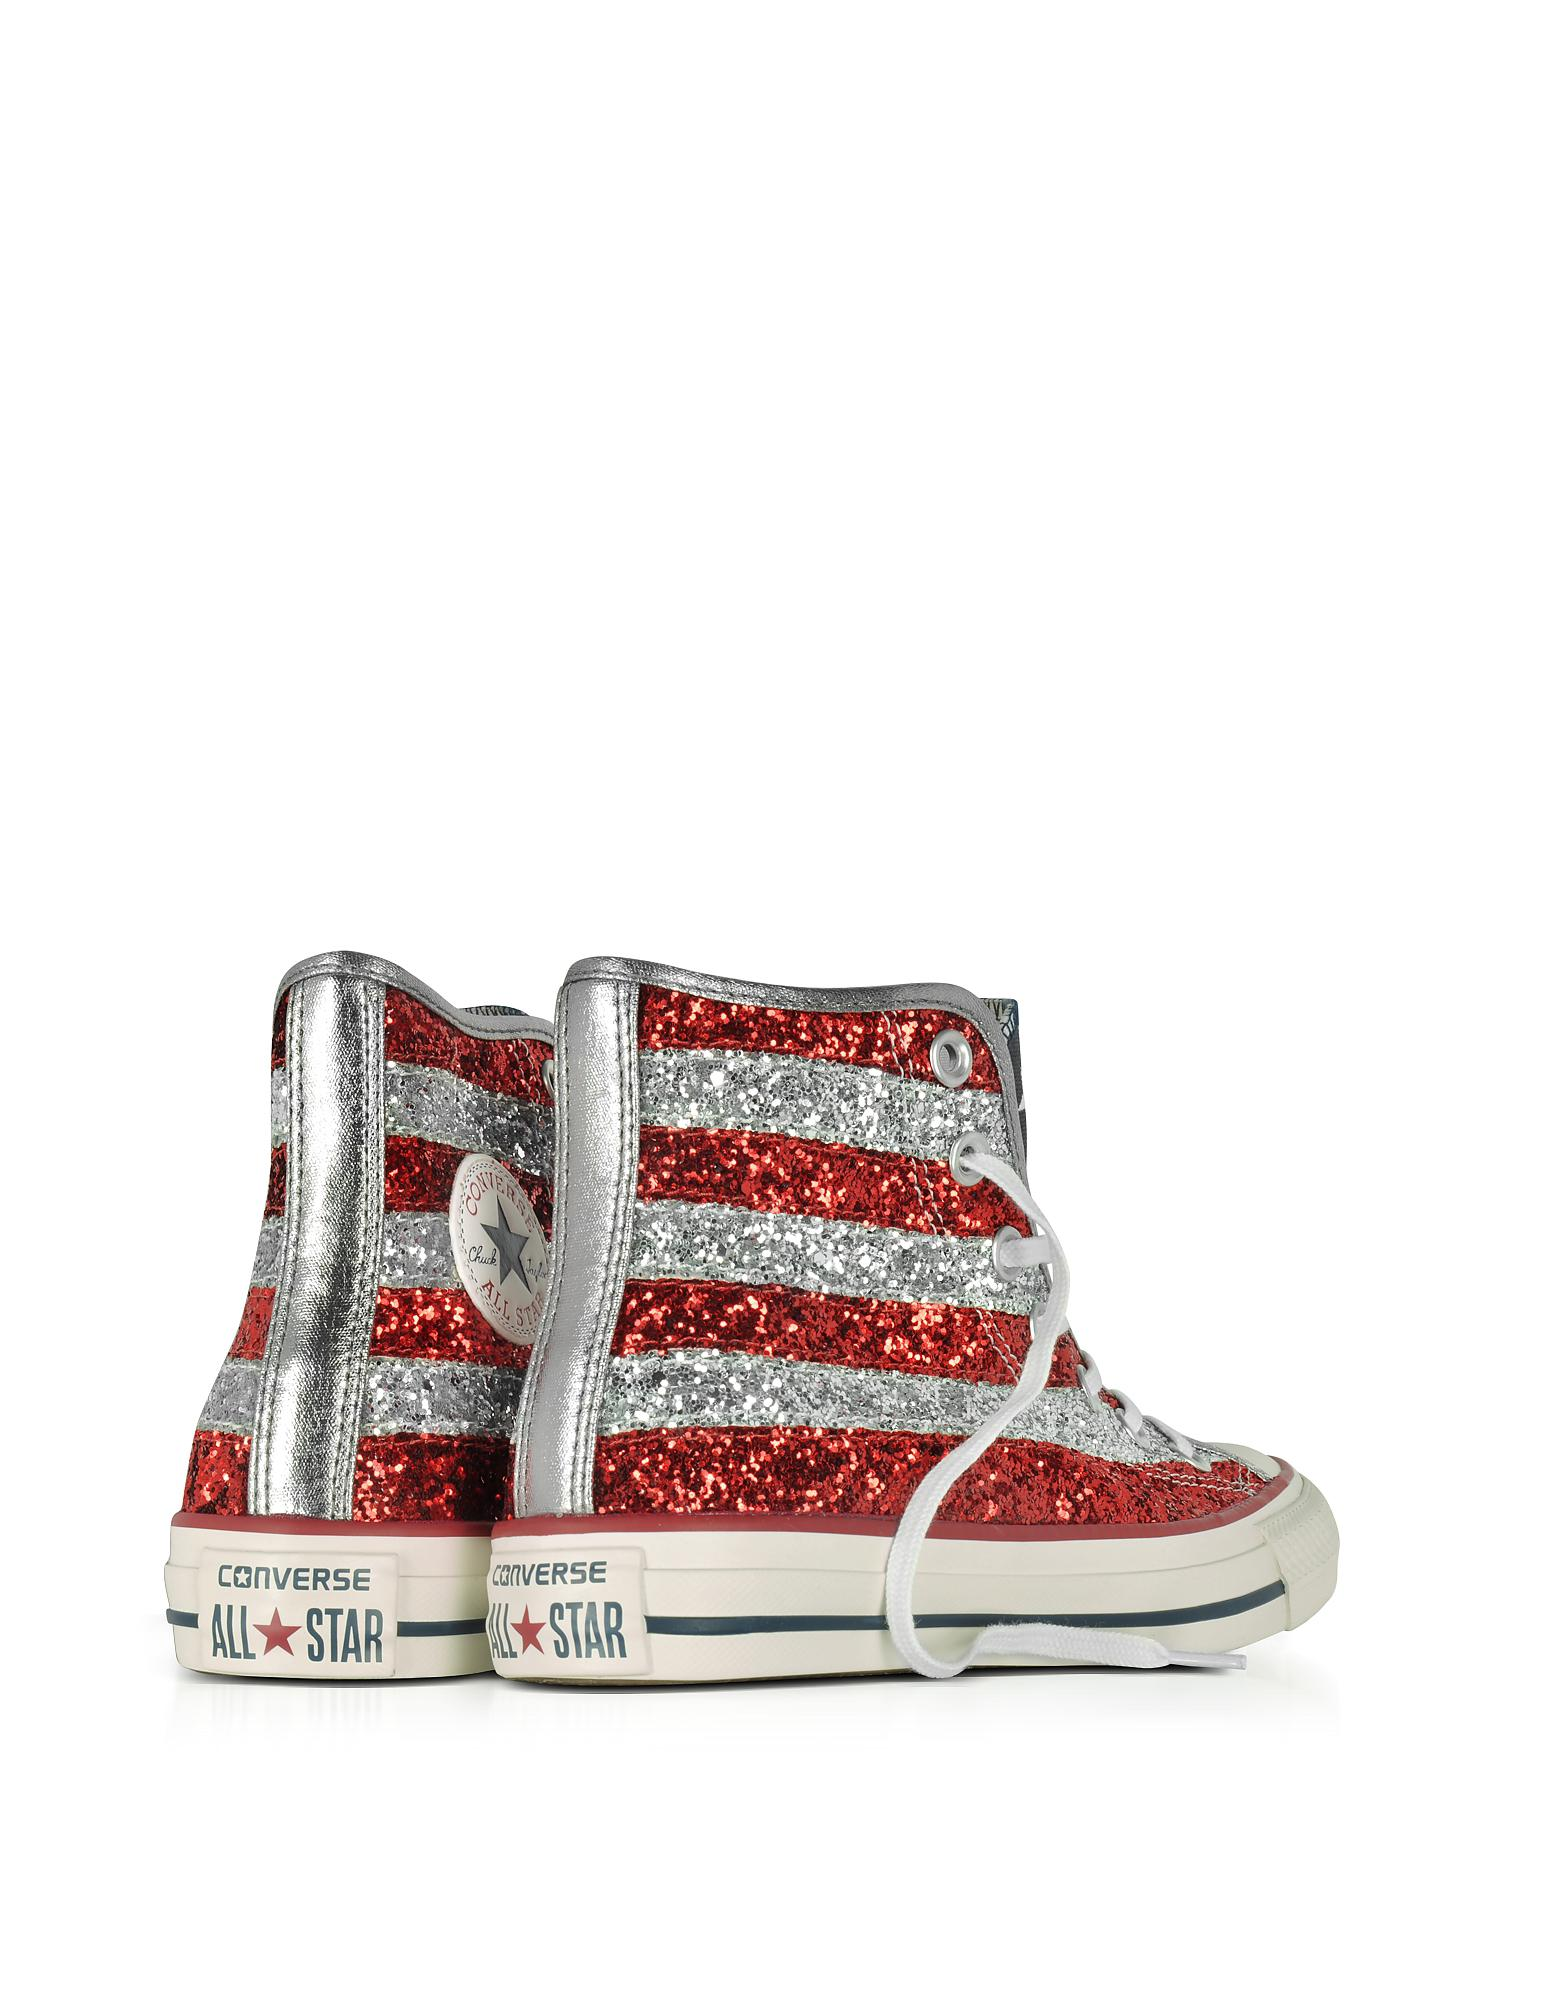 95a0572534e817 Lyst - Converse Chuck Taylor All Star Hi Silver And Red Glitter ...